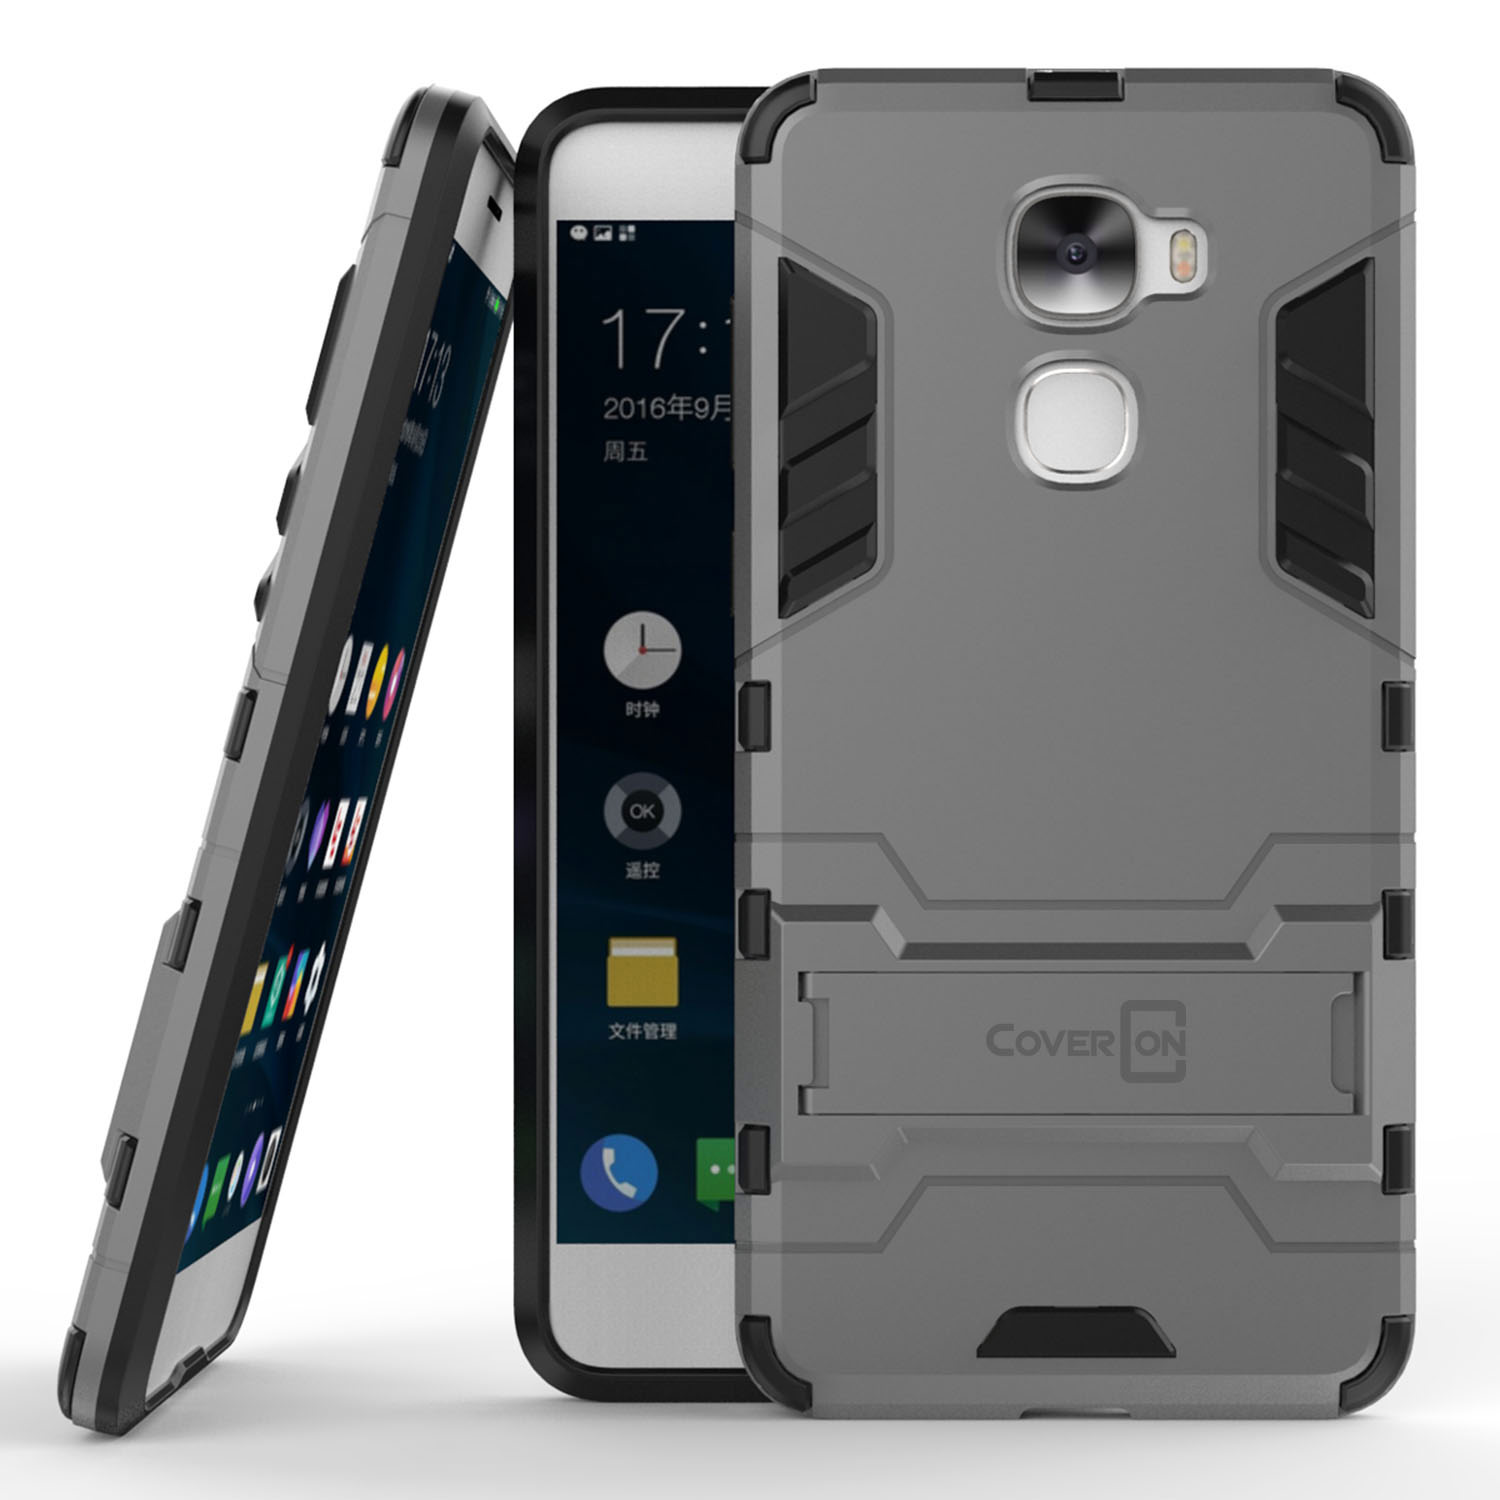 sale retailer 2f9bc dbd9b Details about for LeEco Le Pro 3 Phone Case Armor Kickstand Slim Hard Cover  Gray / Black